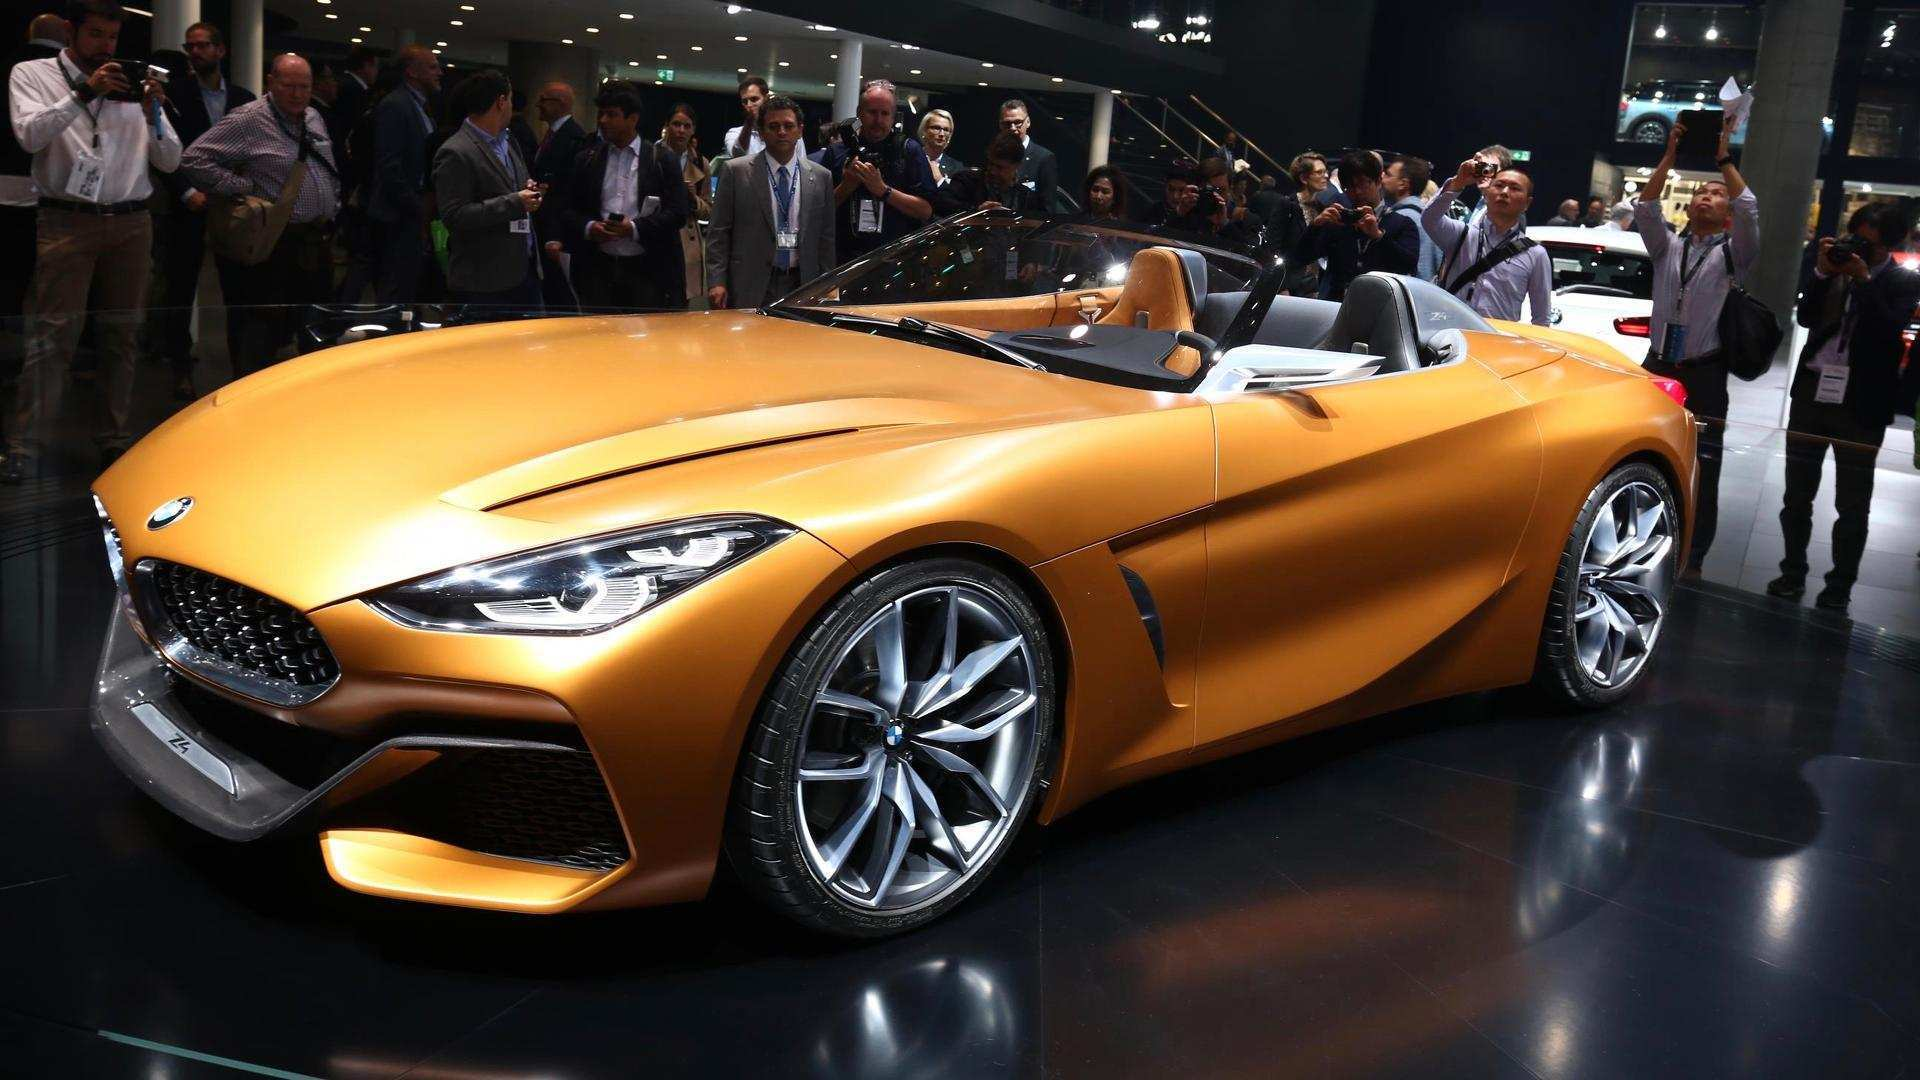 79 Concept of Best Bmw New Z4 2019 New Release Research New by Best Bmw New Z4 2019 New Release